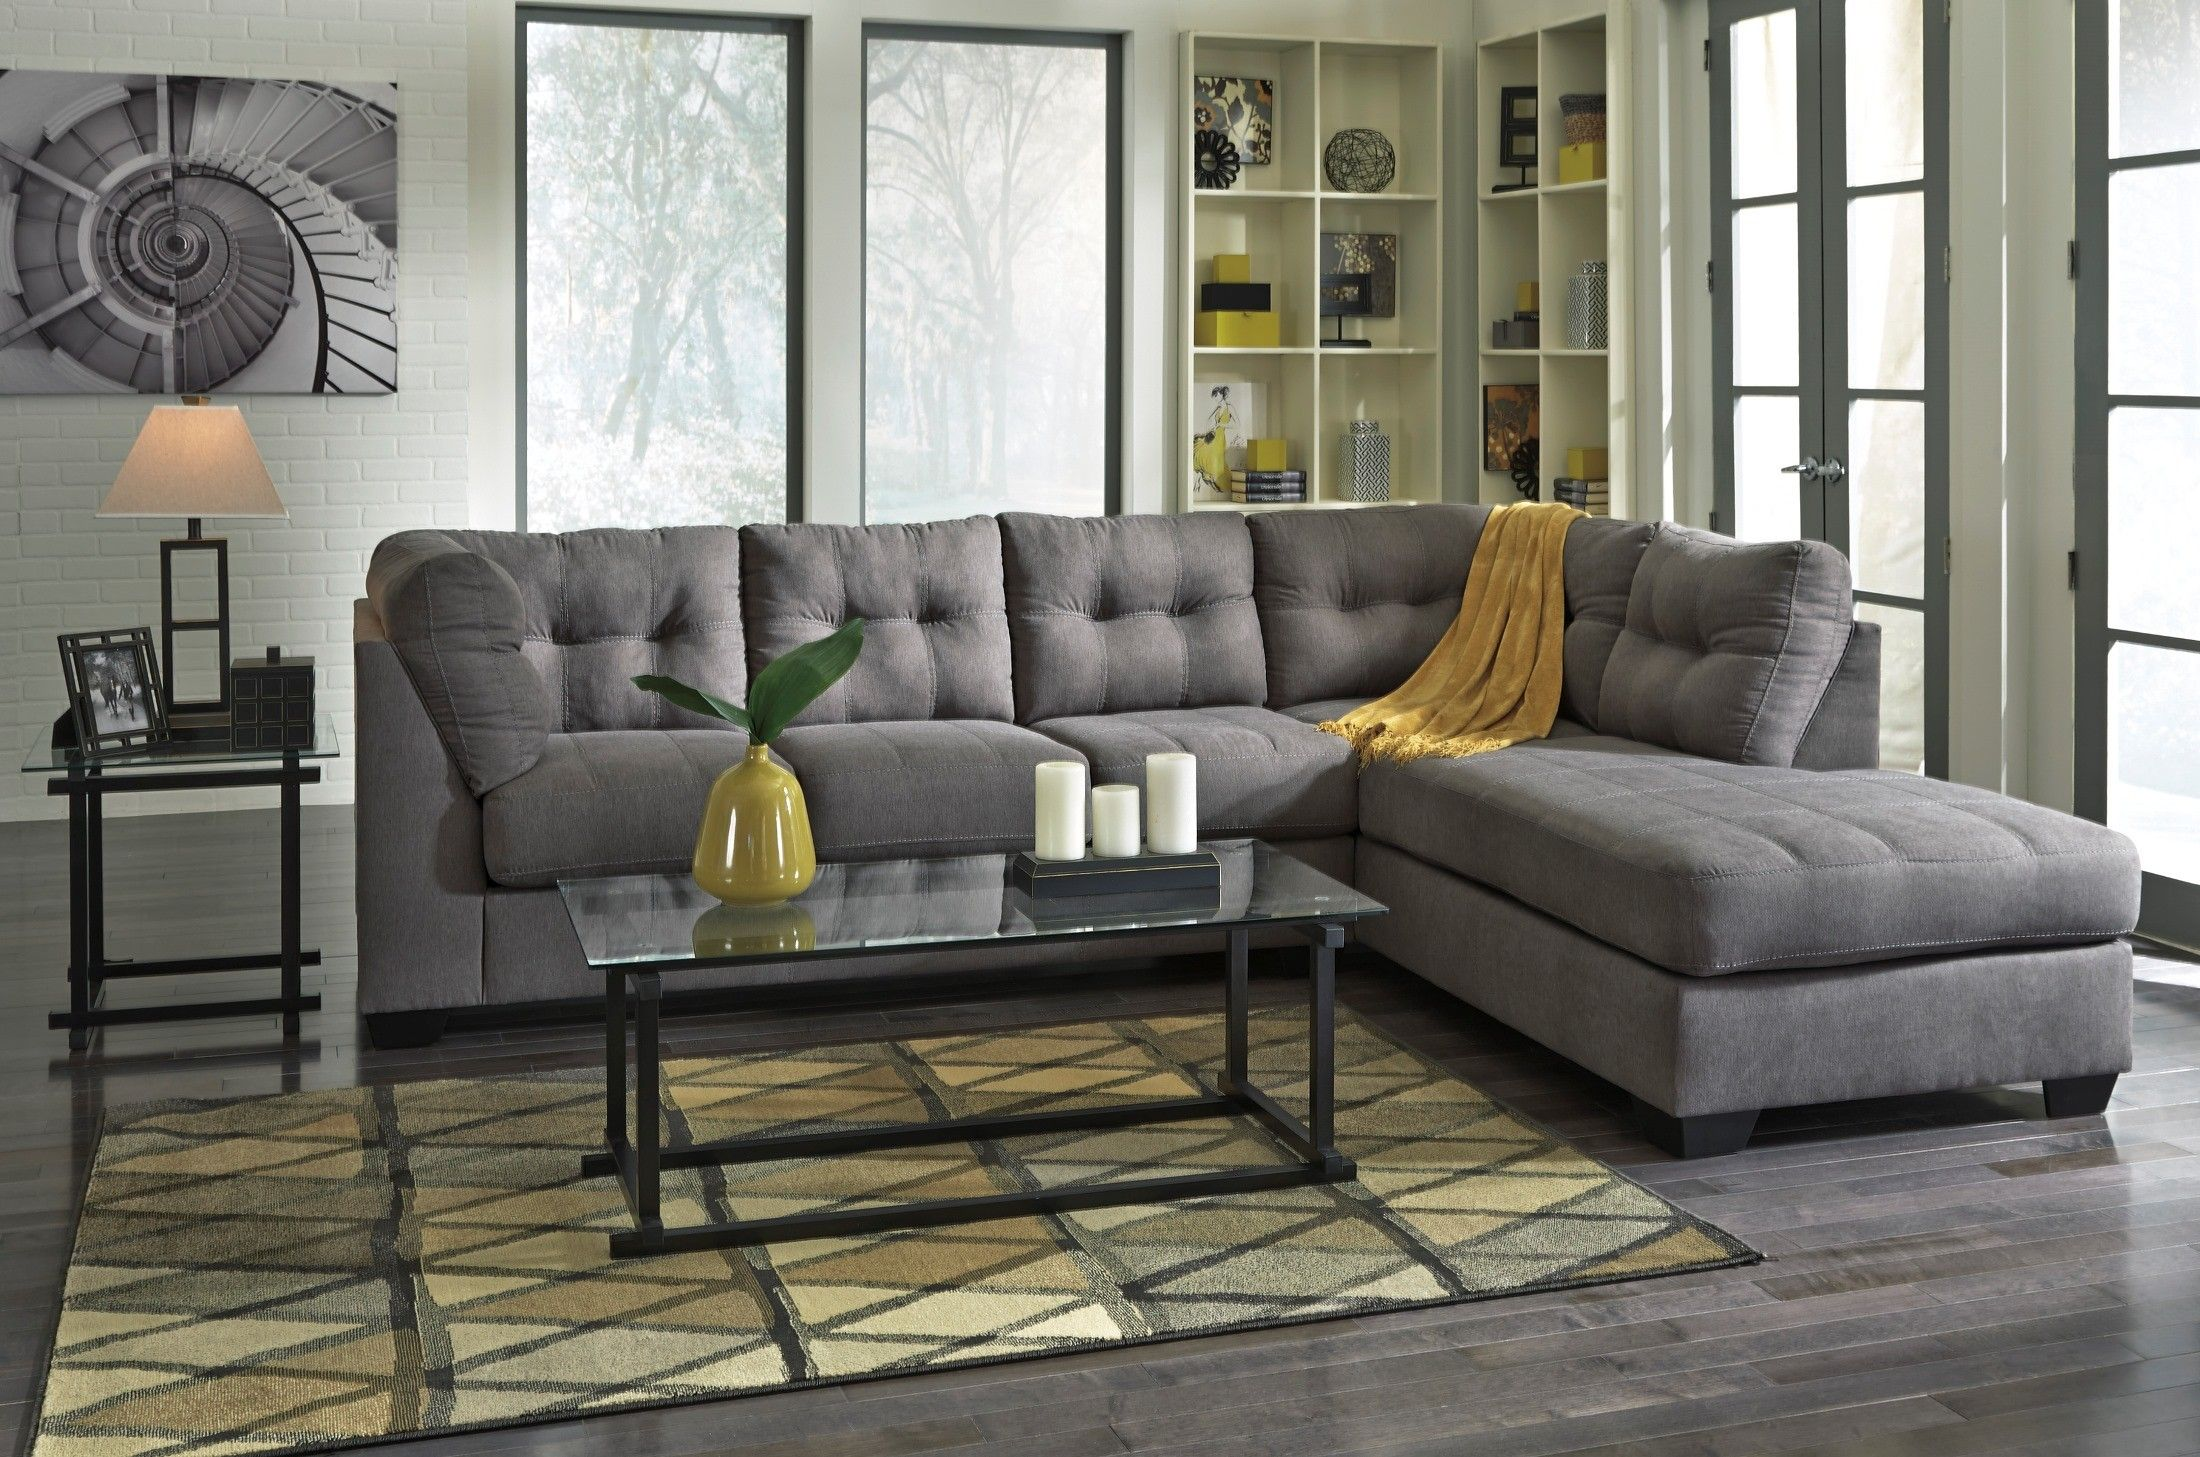 Amazing $728 The Comfortable Contemporary Design Of The Maier Charcoal Upholstery  Collection Features Plush Boxed Seating And